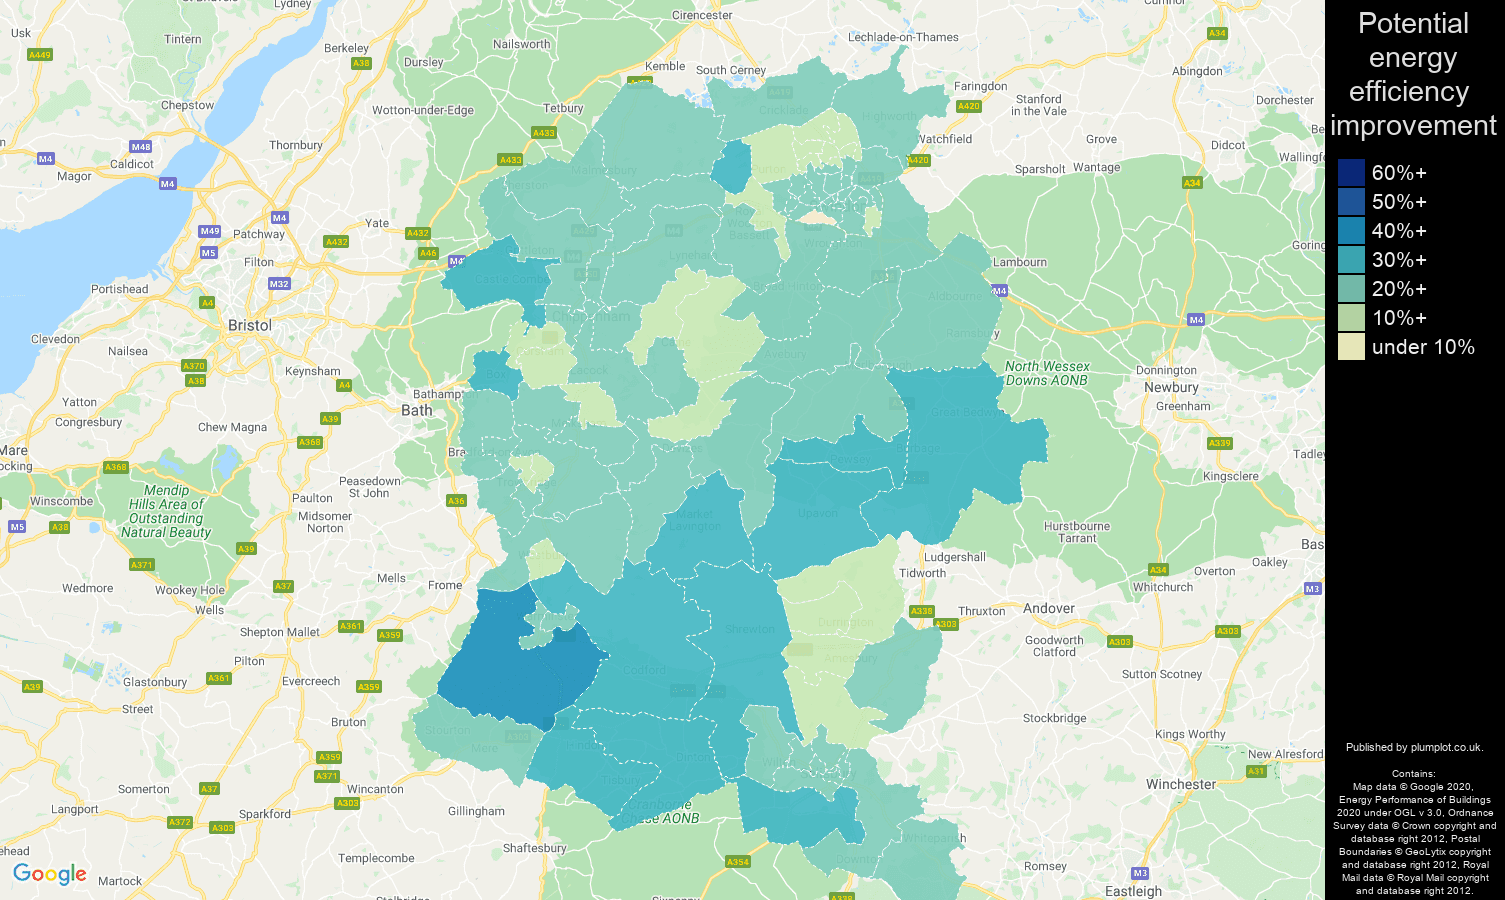 Wiltshire map of potential energy efficiency improvement of houses